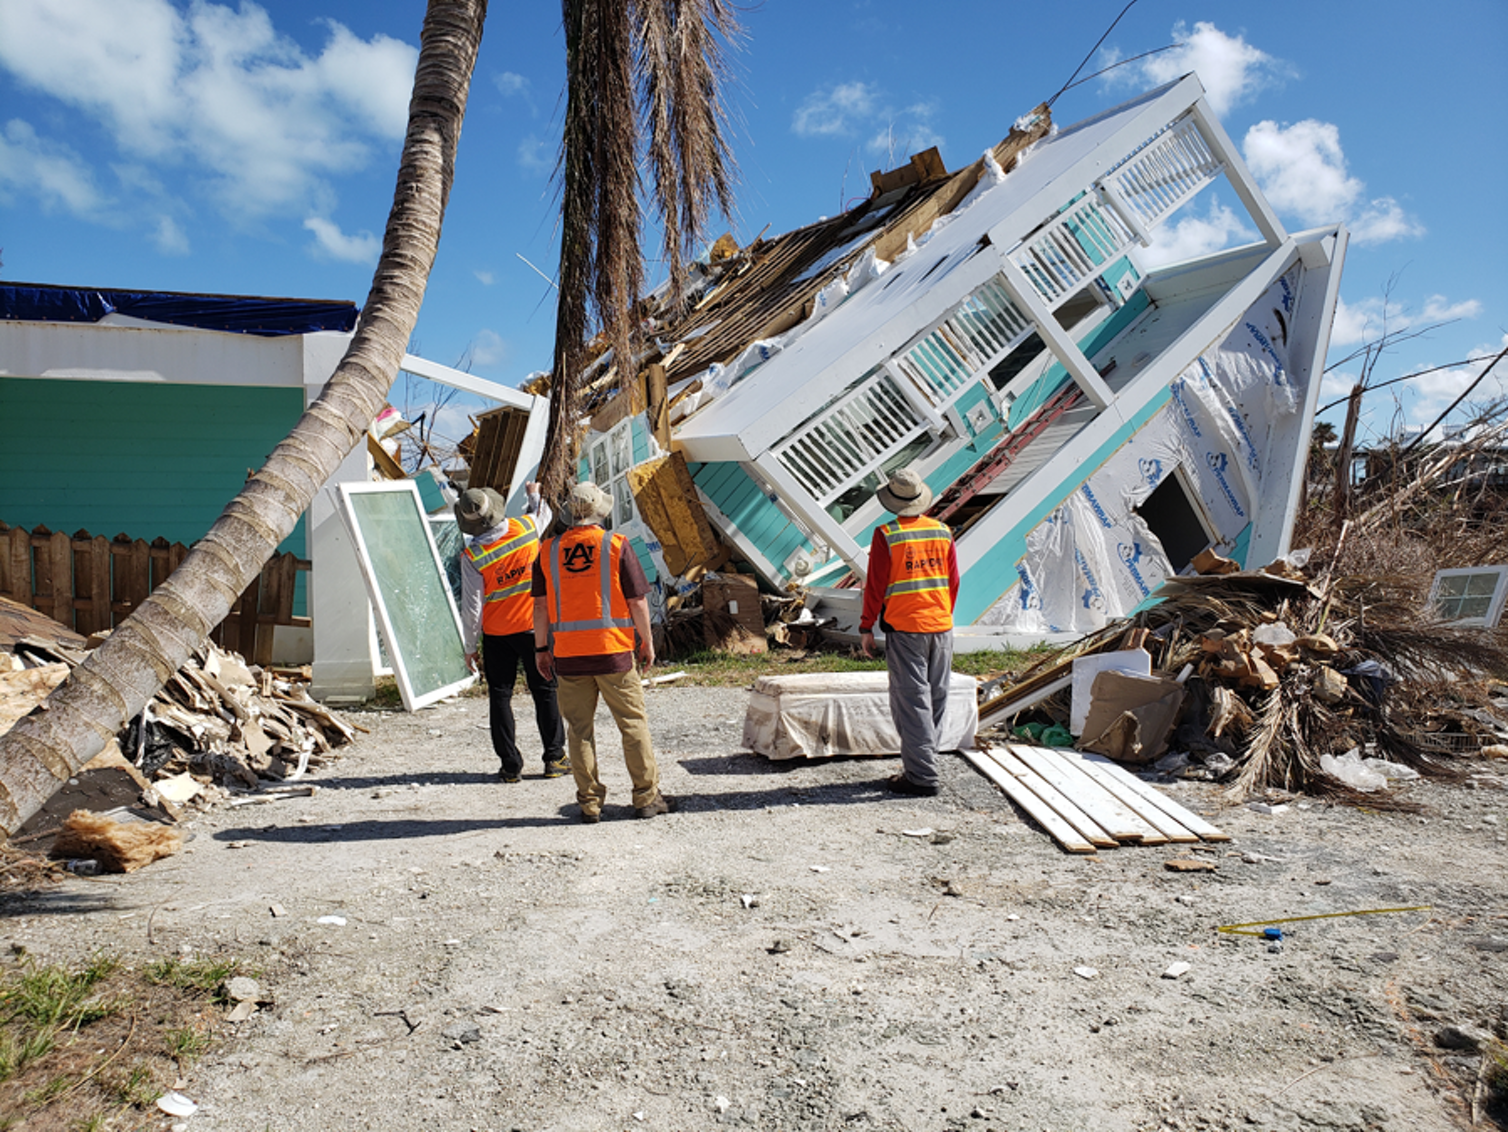 Engineers from the Structural Extreme Events through Reconnaissance research group inspected buildings damaged after the hurricane to capture how failures happened. Justin Marshall